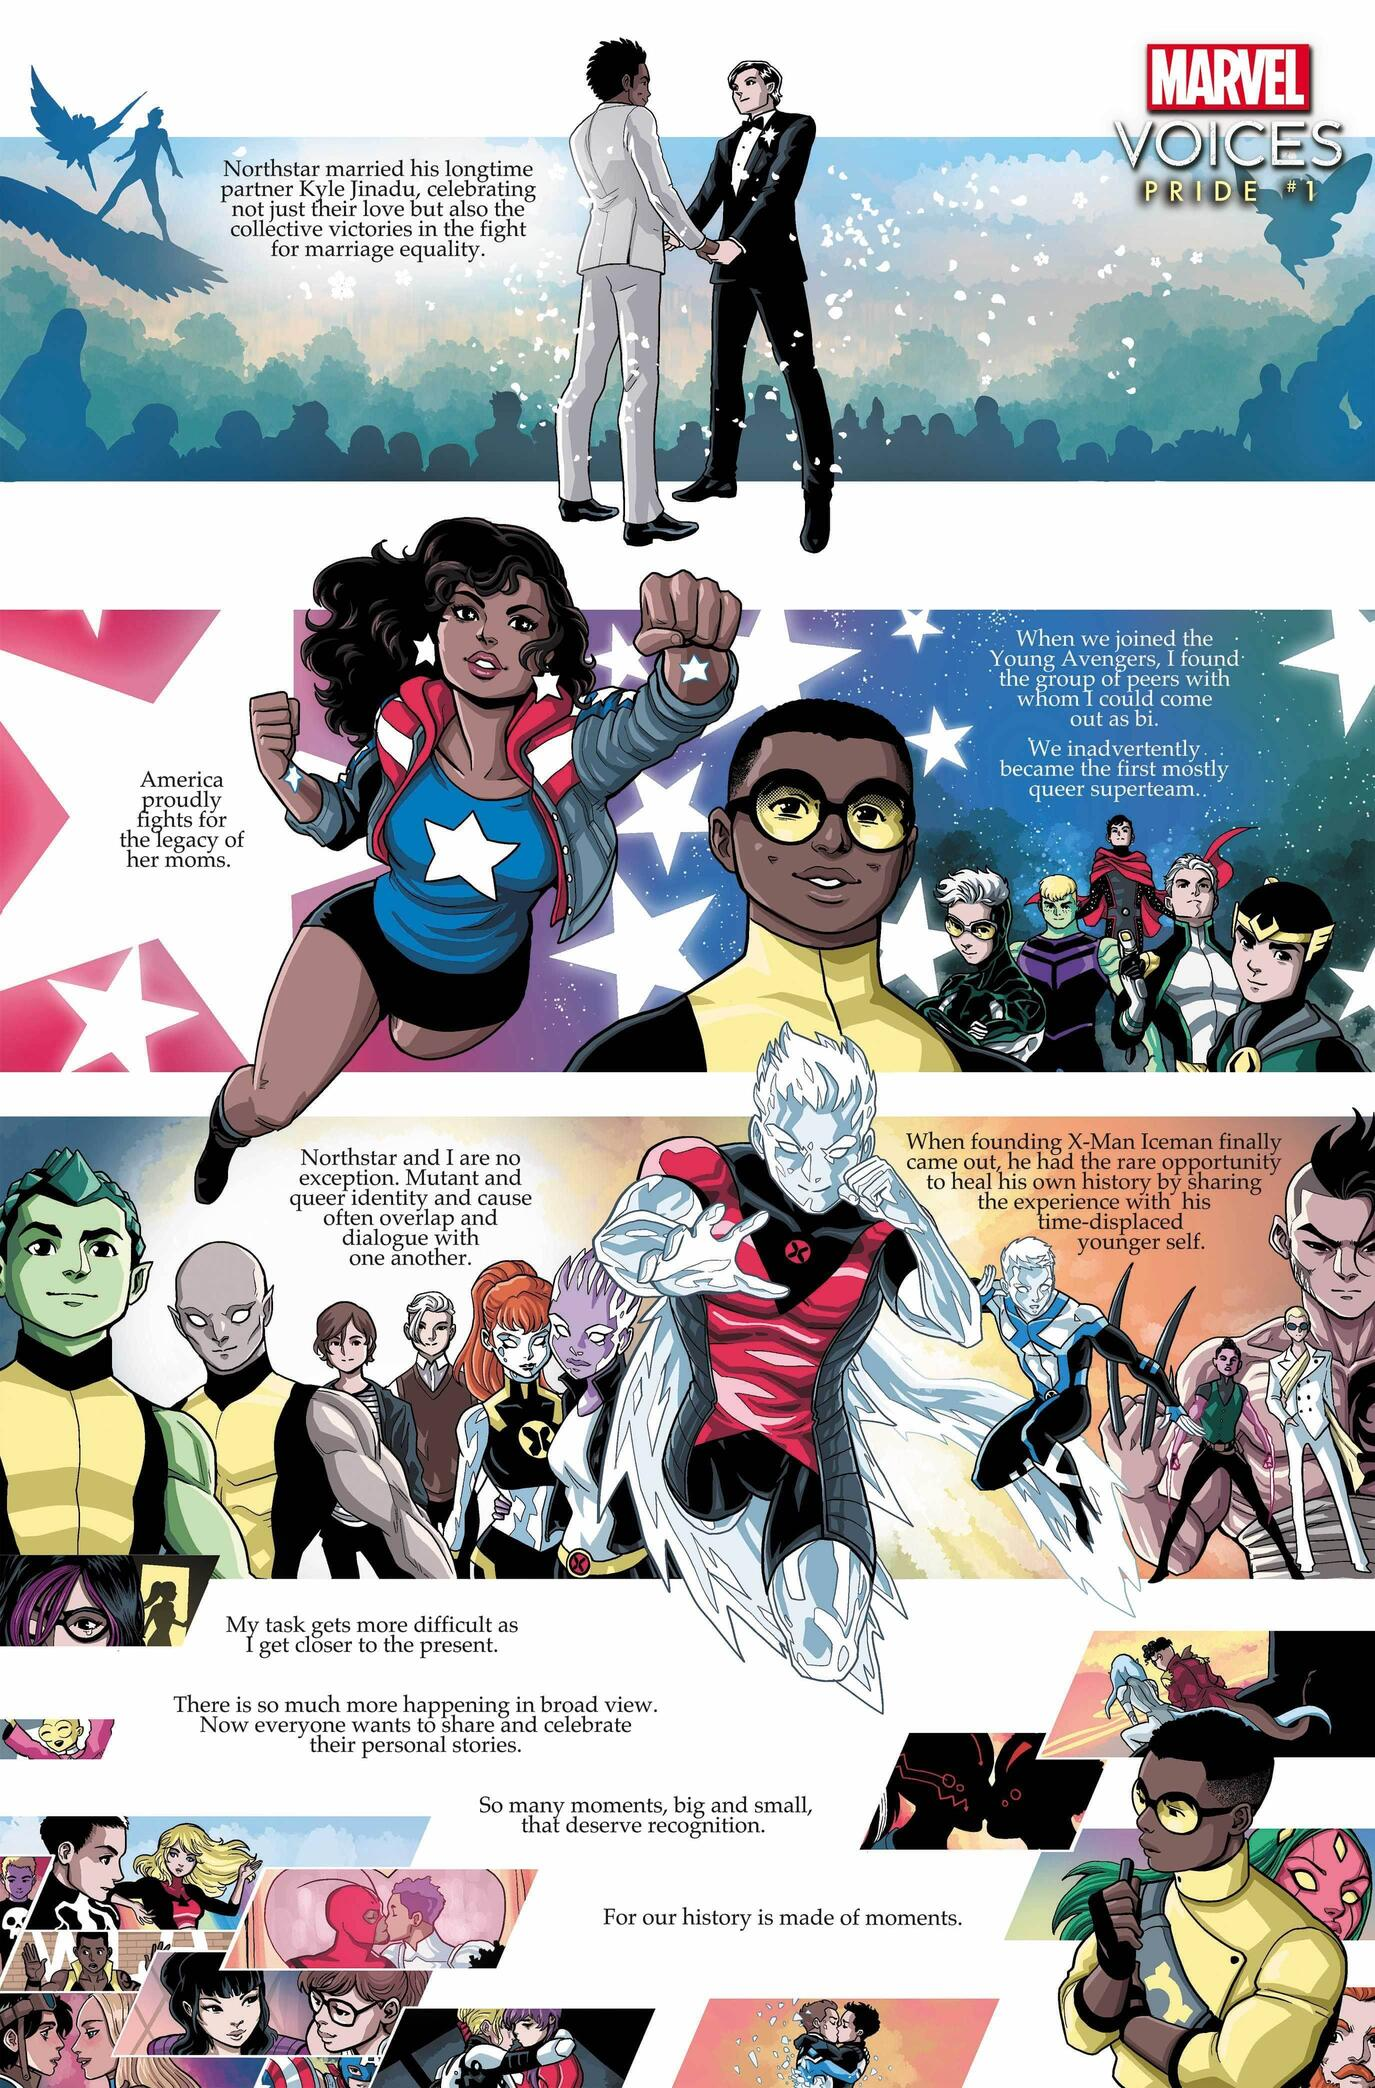 MARVEL'S VOICES: PRIDE #1 introduction by LUCIANO VECCHIO